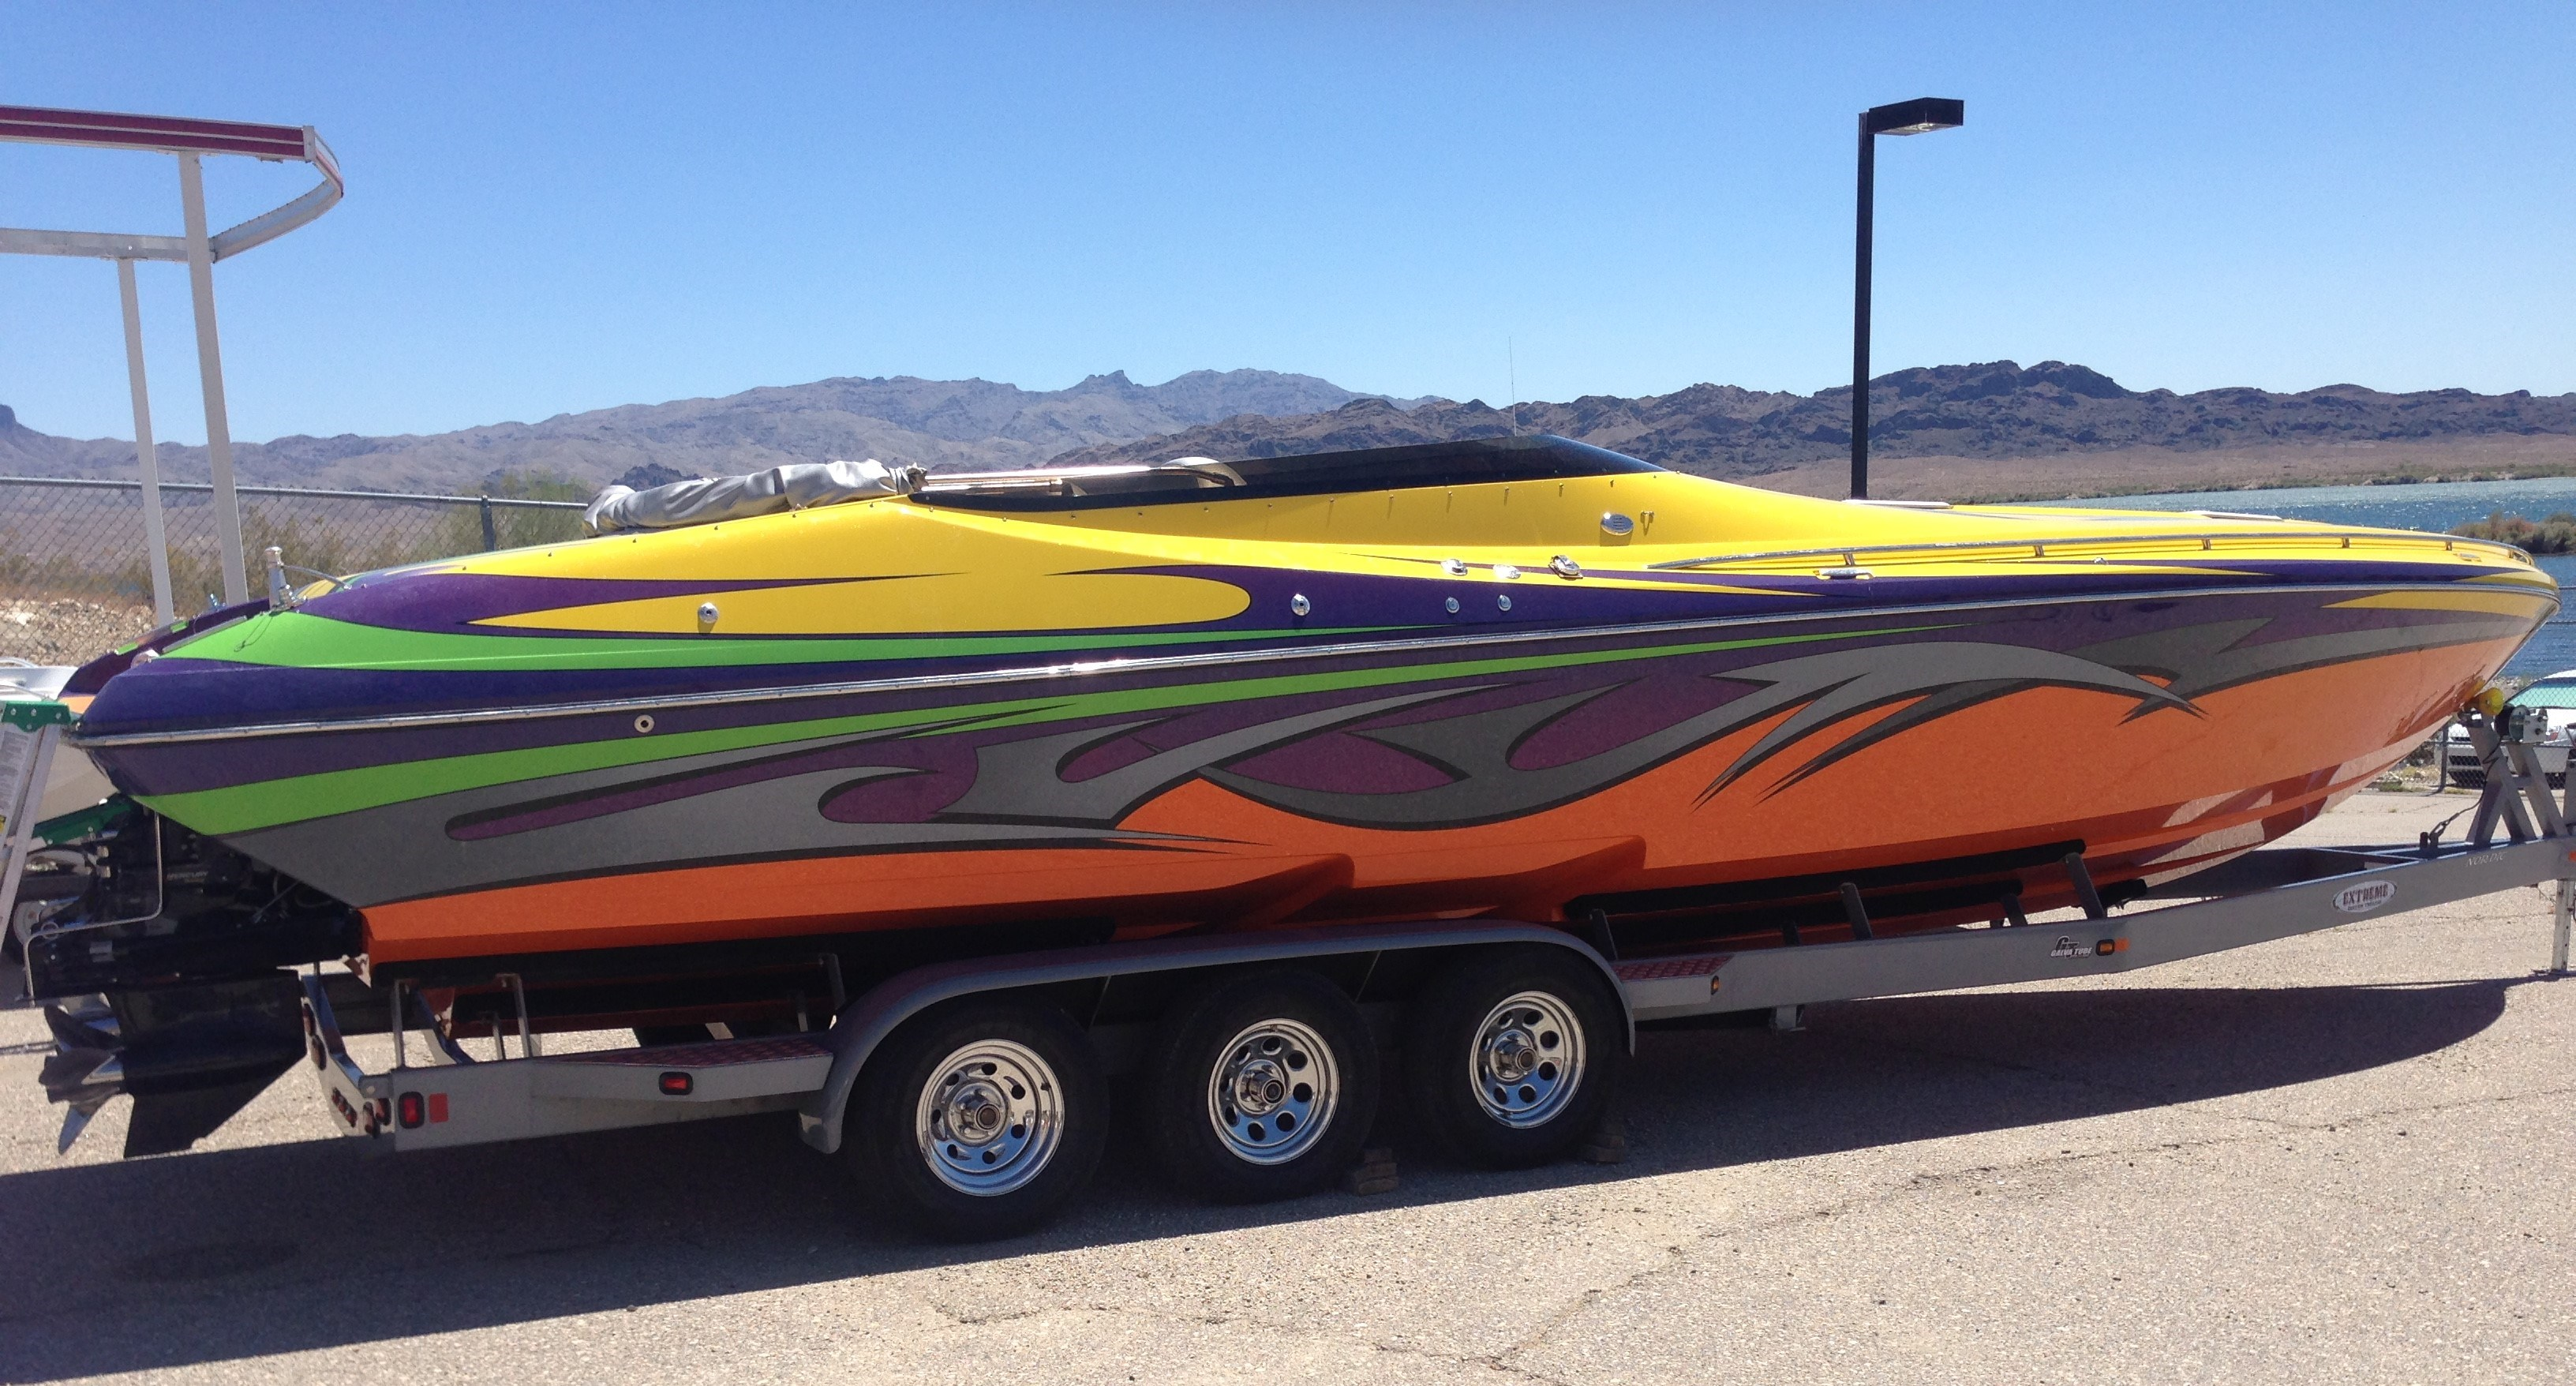 The 35-foot Nordic twin motorboat involved in a deadly single-boat accident in Lake Havasu on June 10. (MCSO)